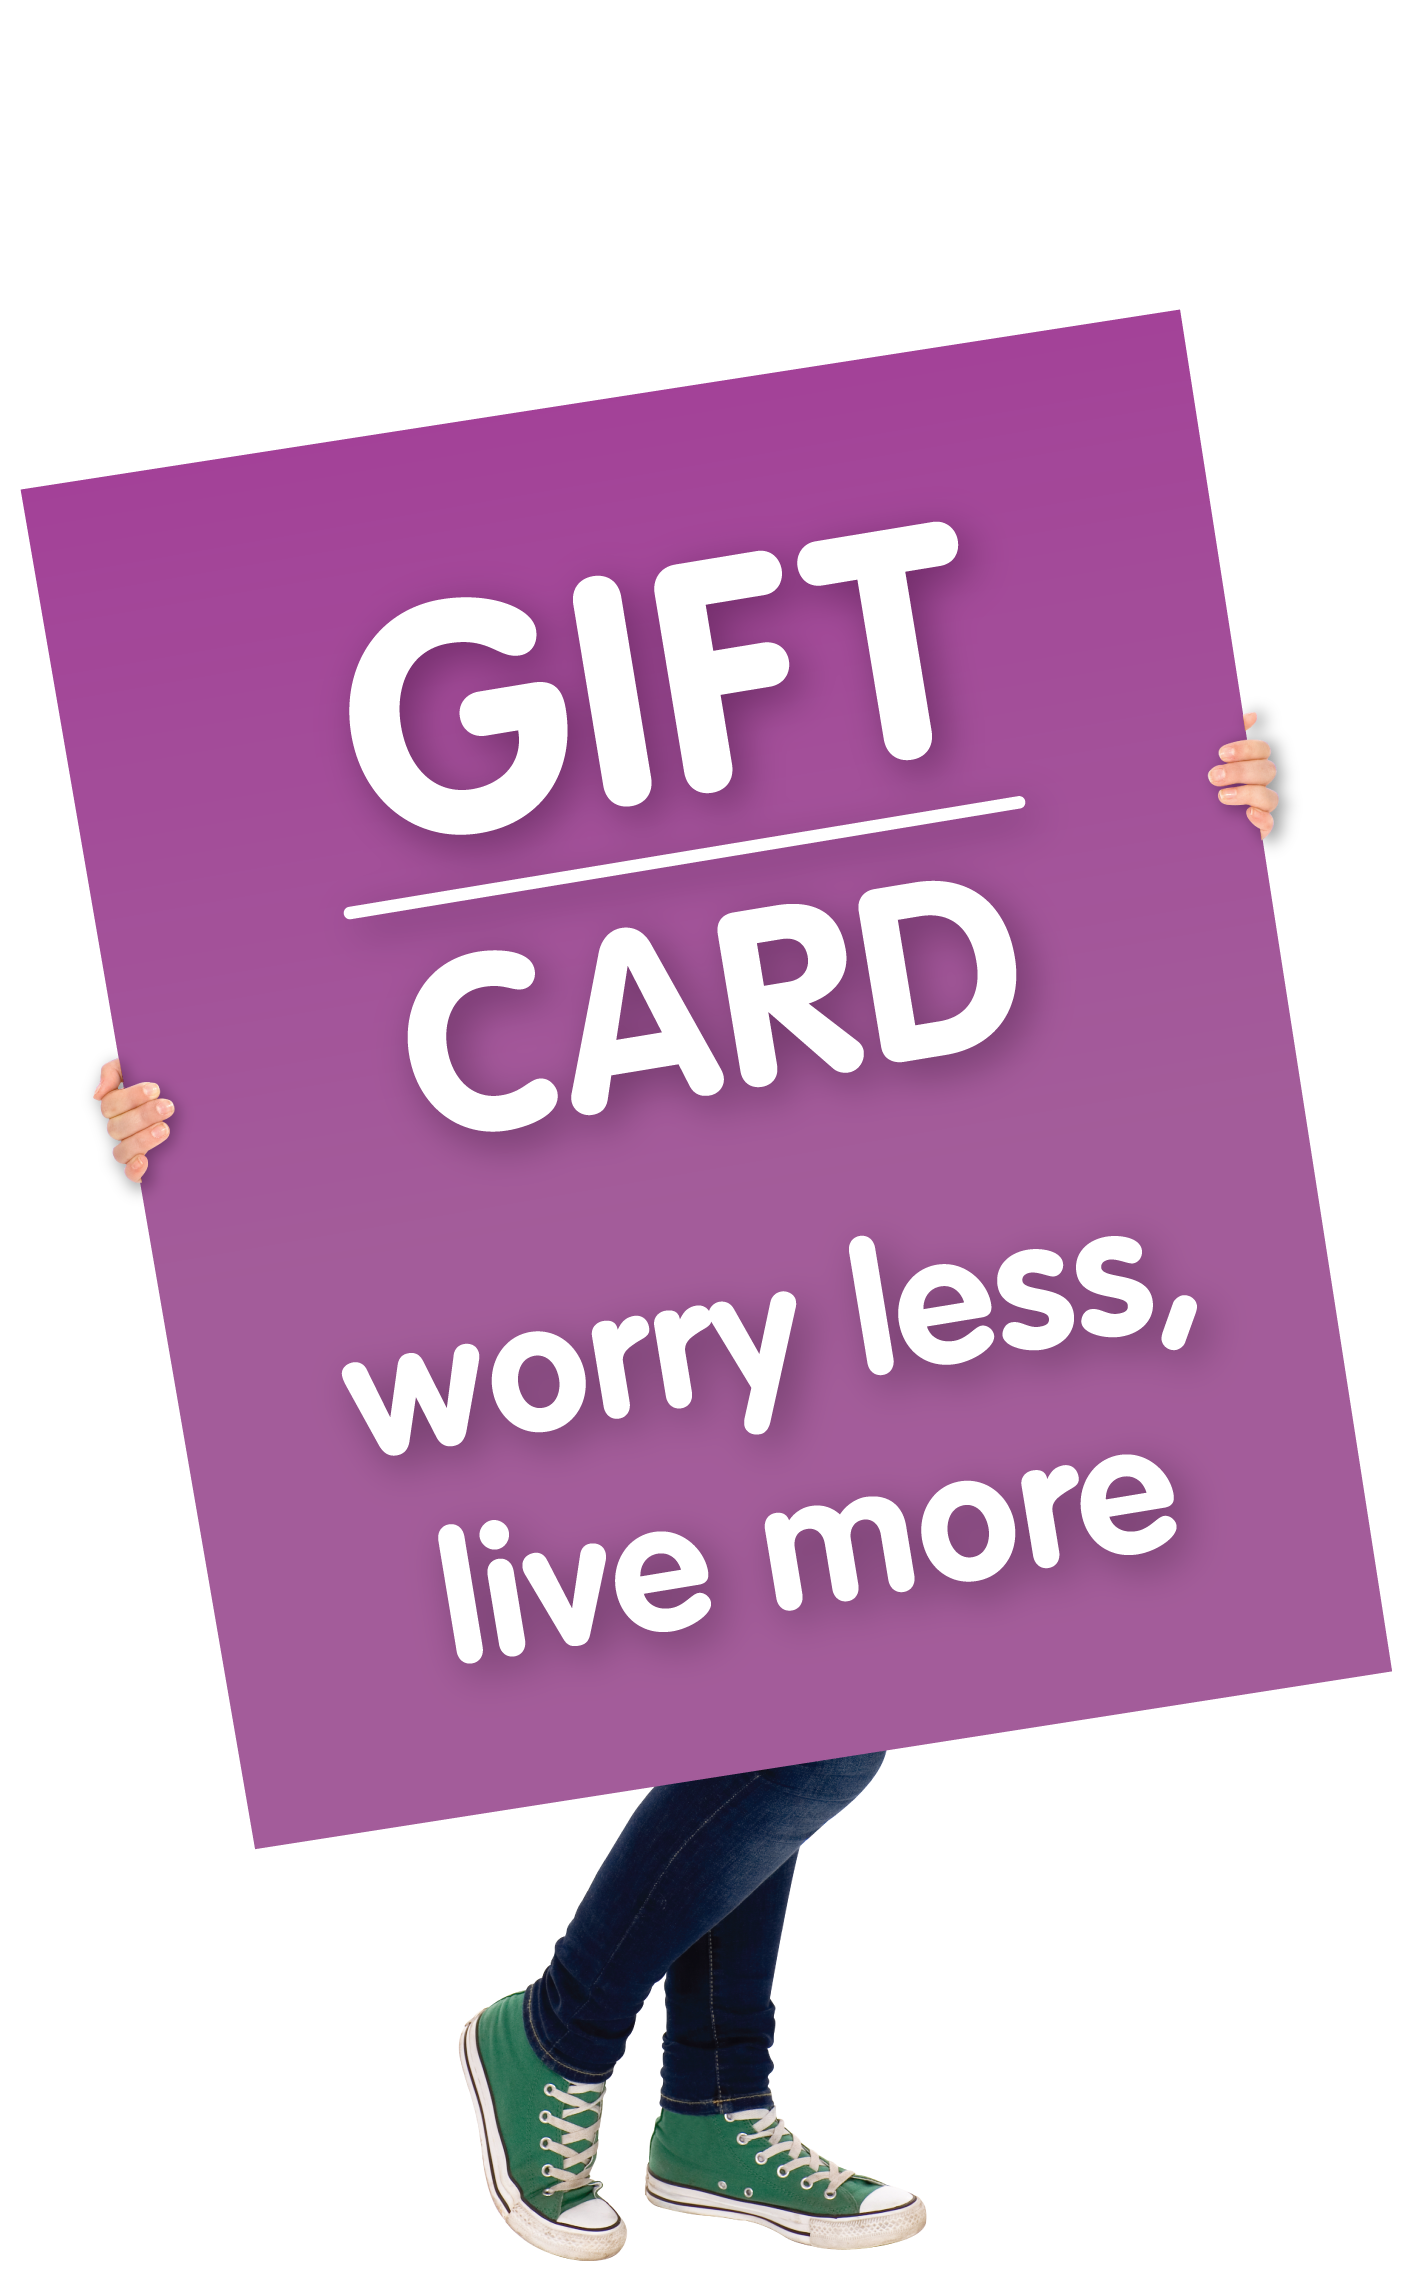 Gift Card, Worry Less Live More